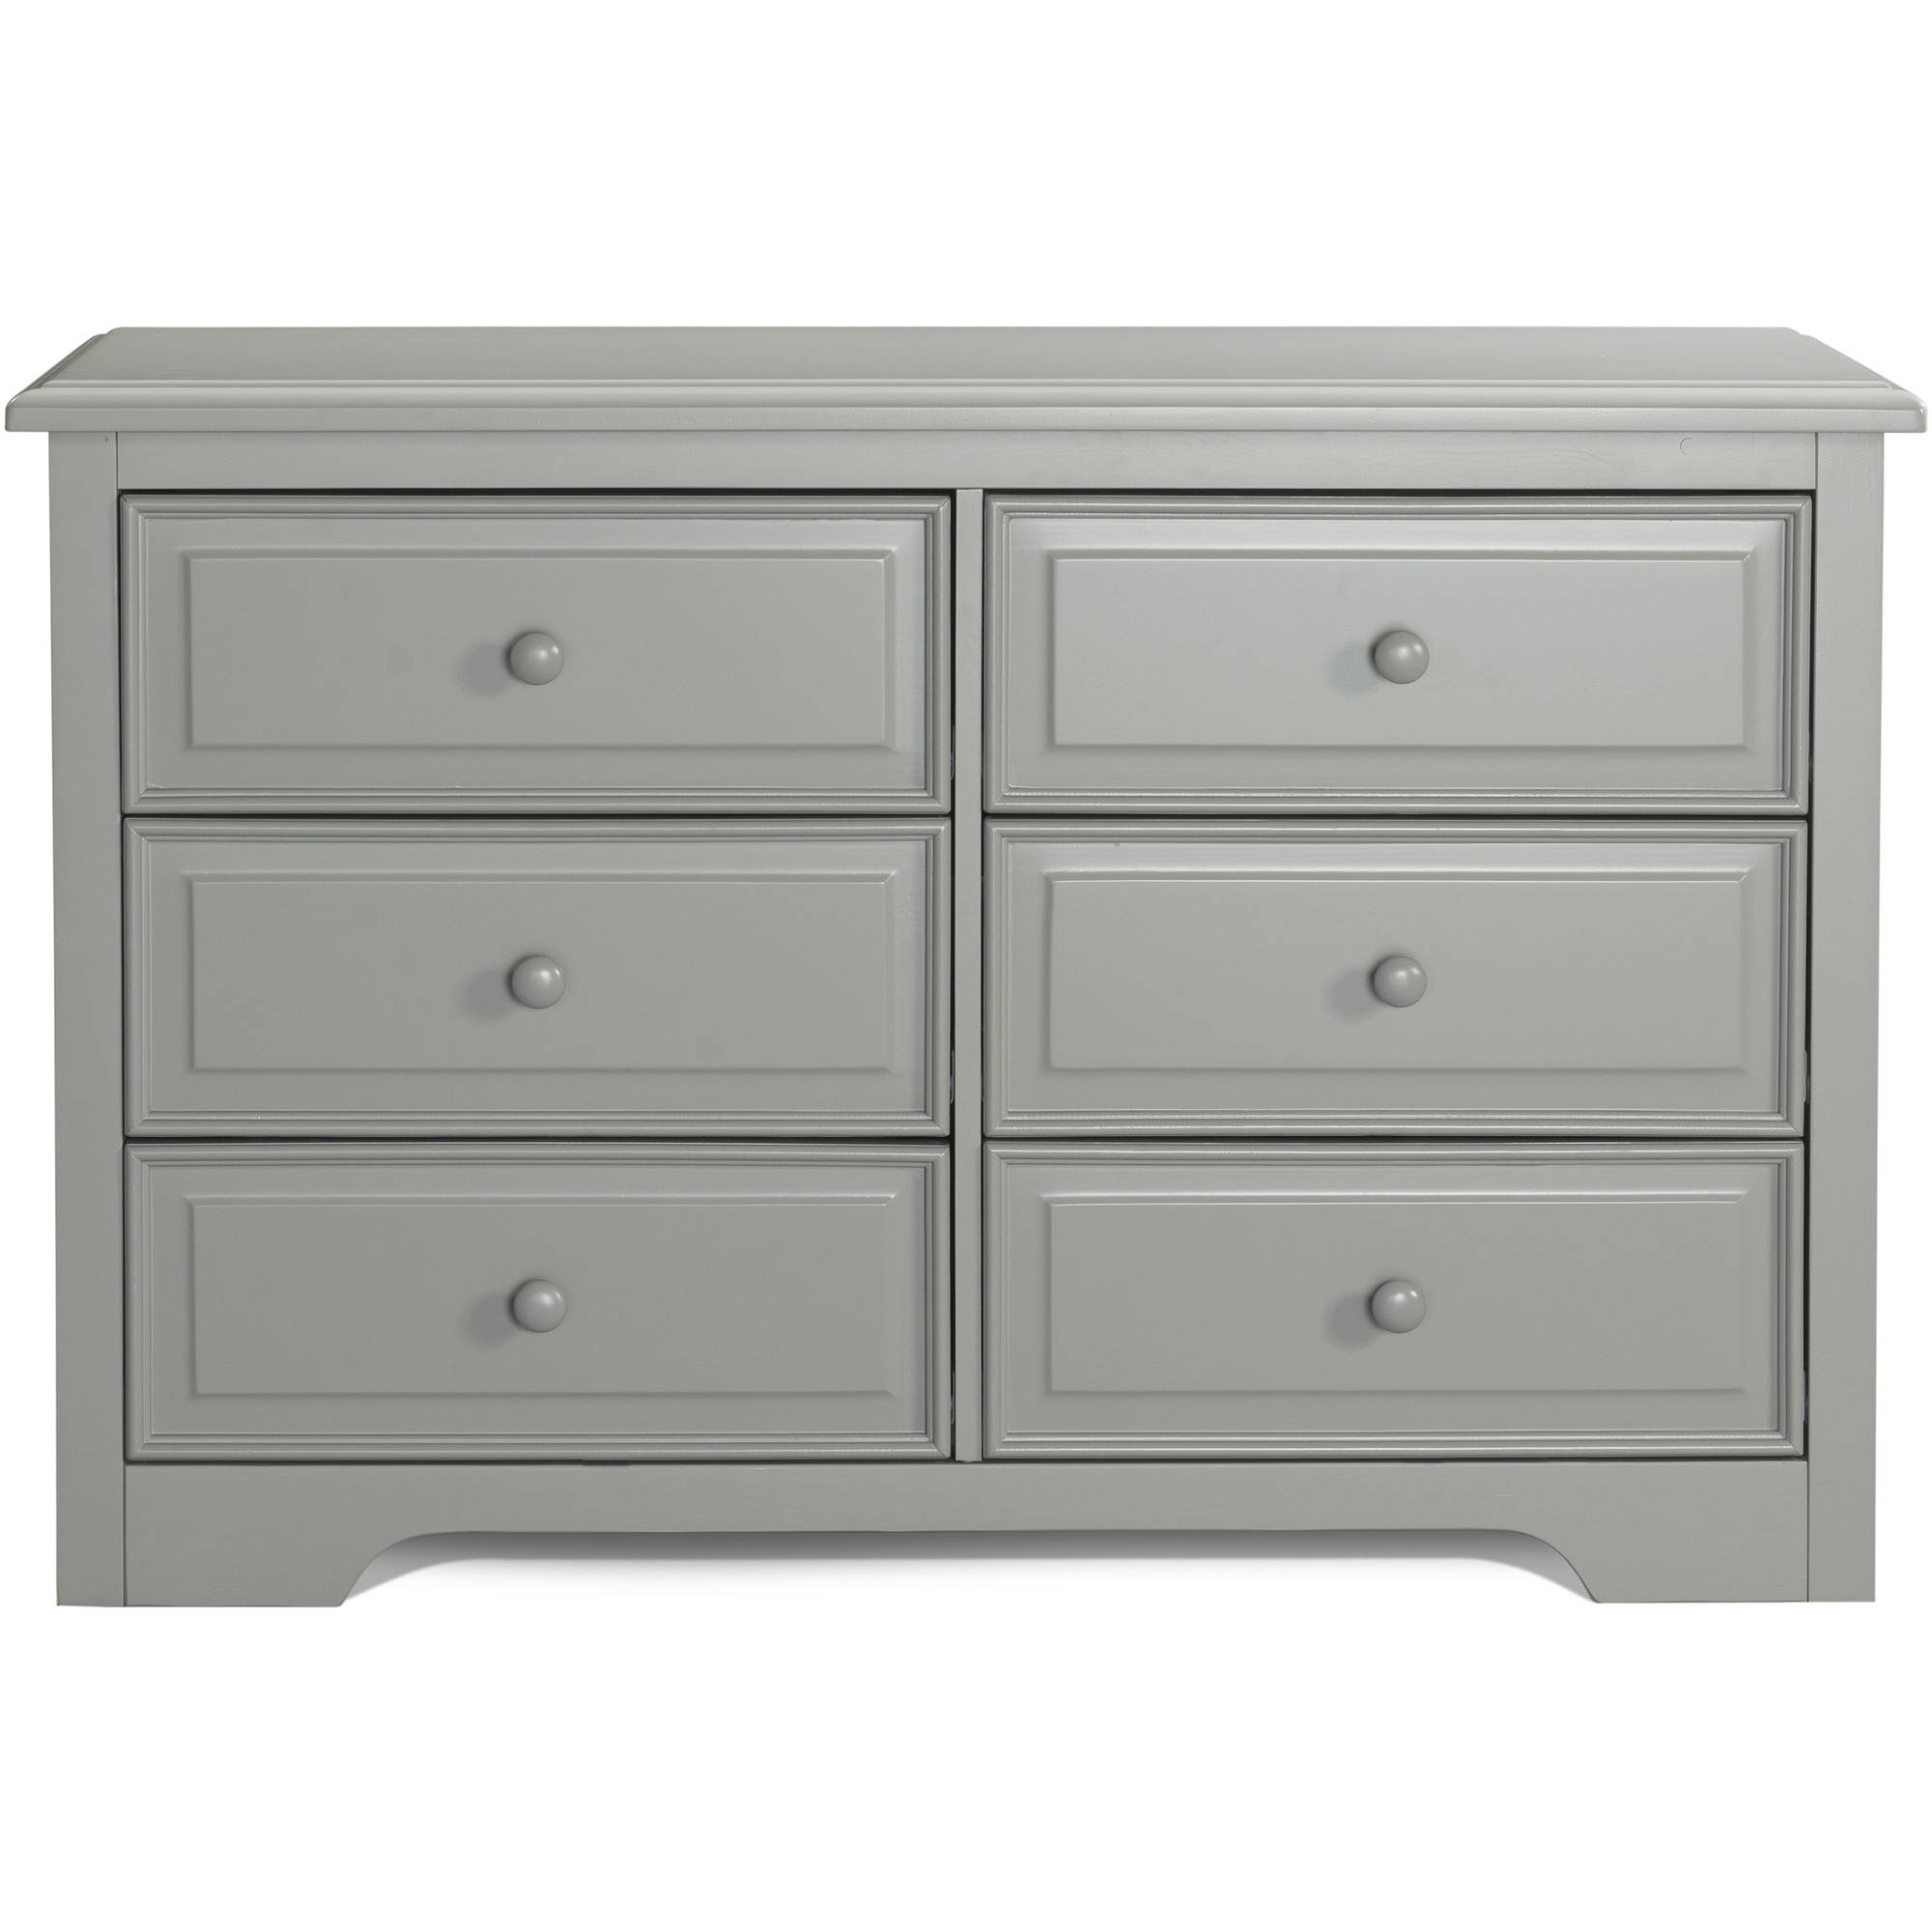 Graco White Dresser Bestdressers 2017